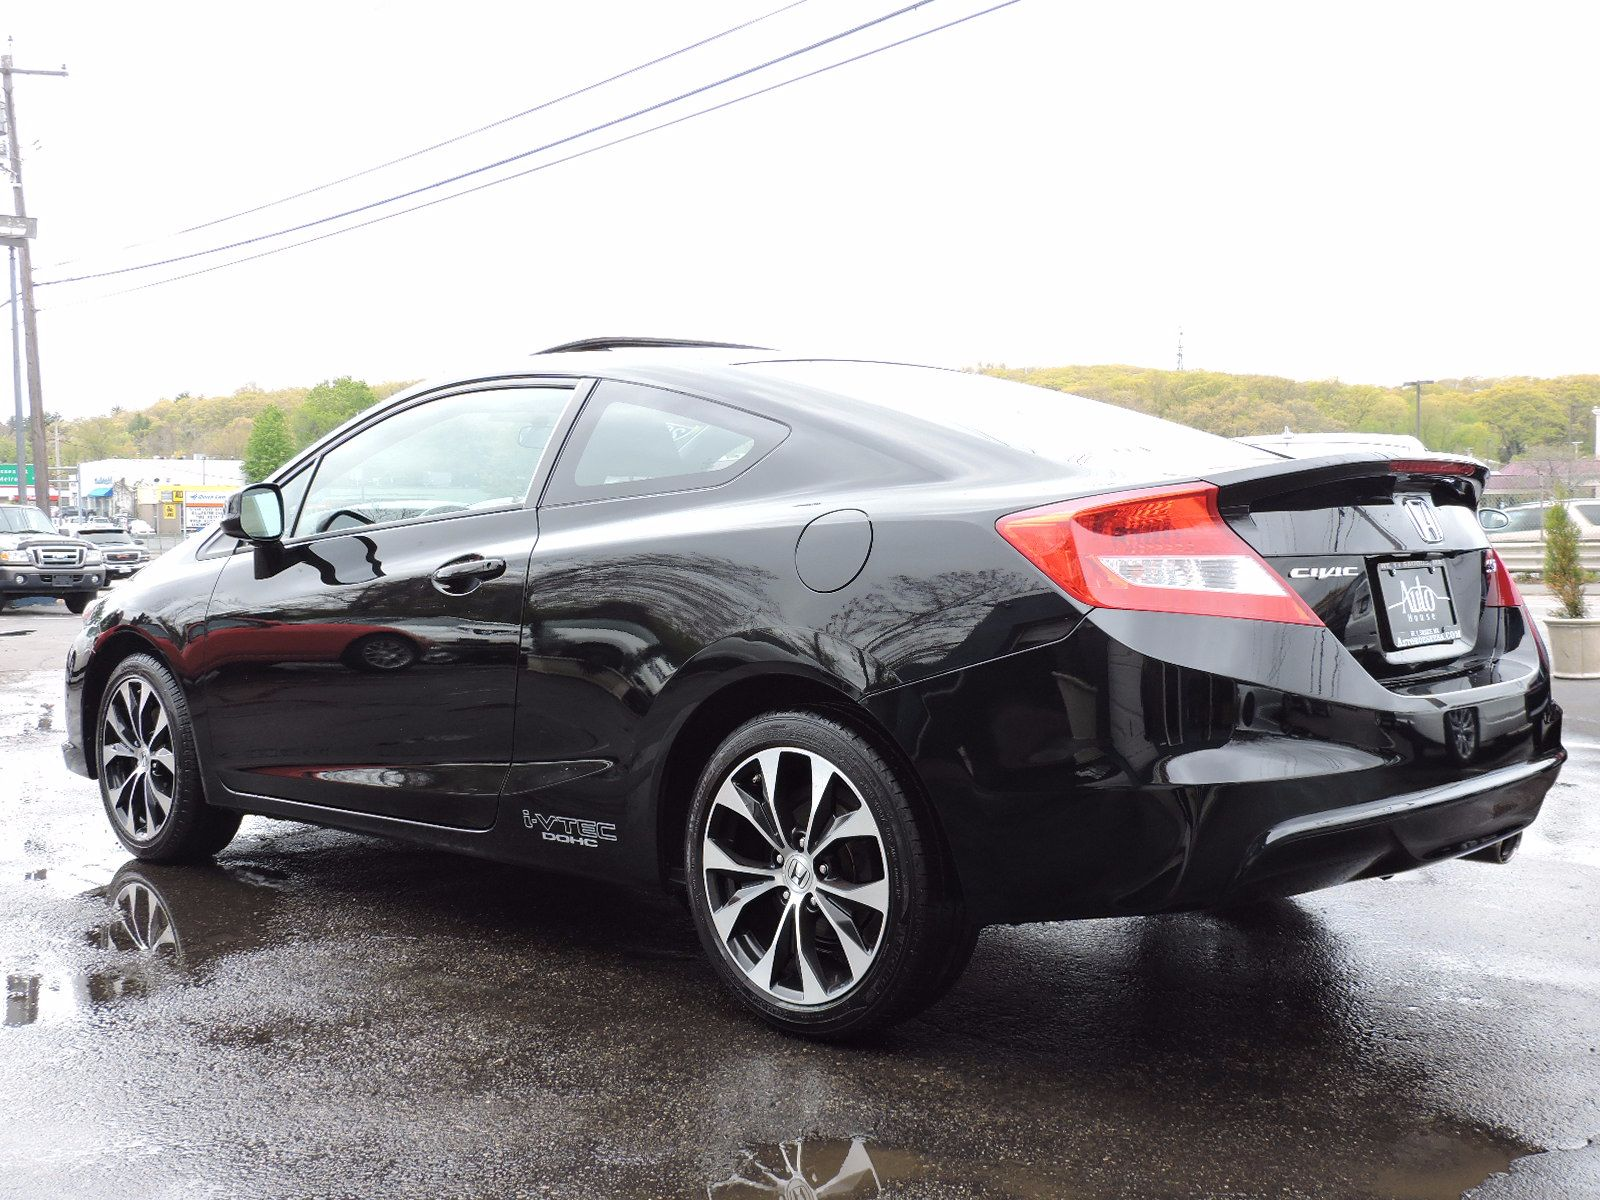 2013 Honda Civic Cpe - 6 Speed Manual